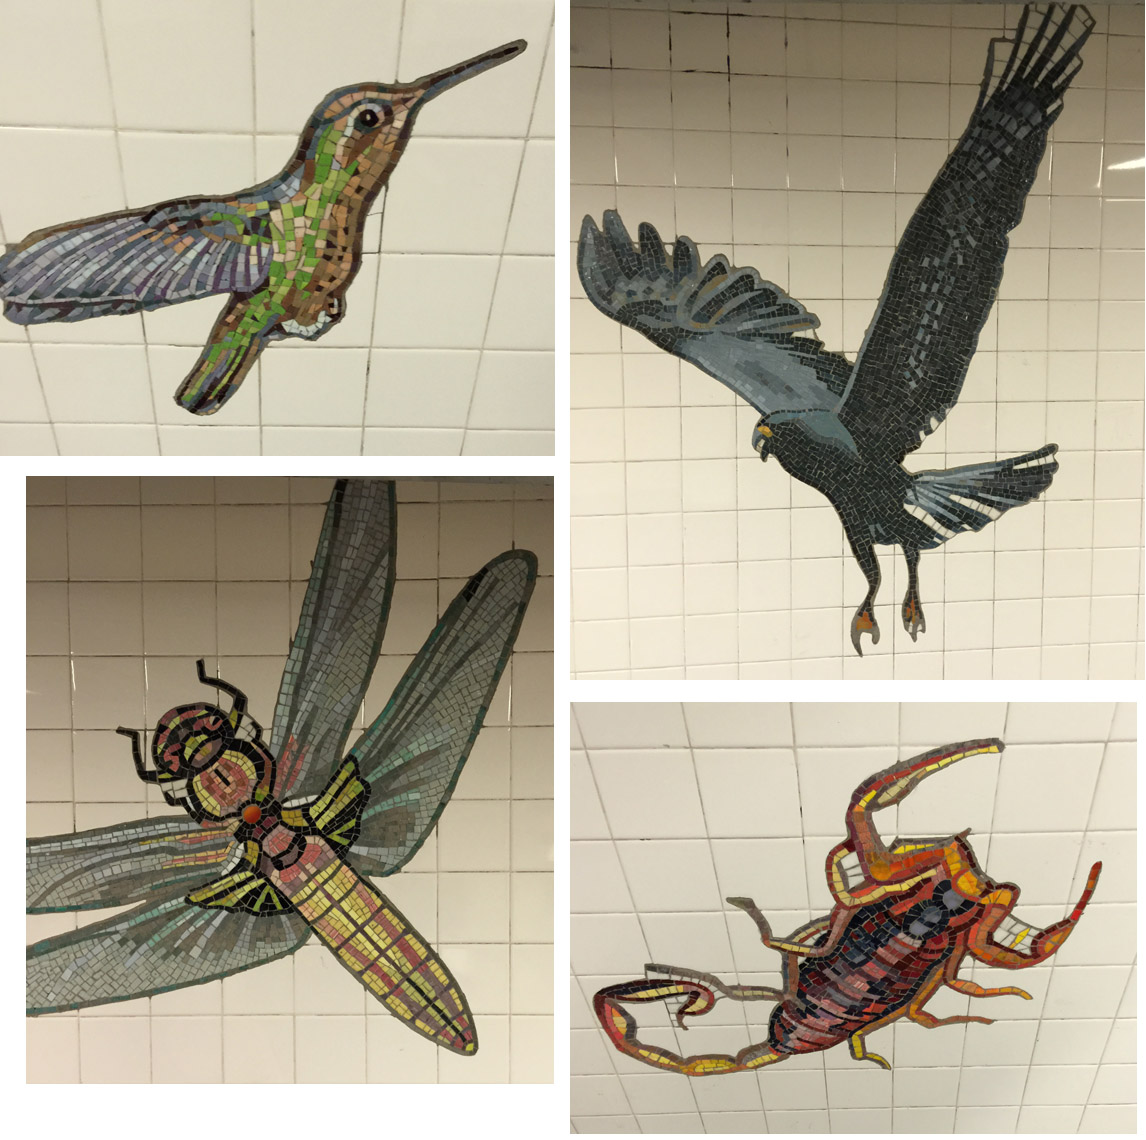 Mosaics on the wall in the New York Subway